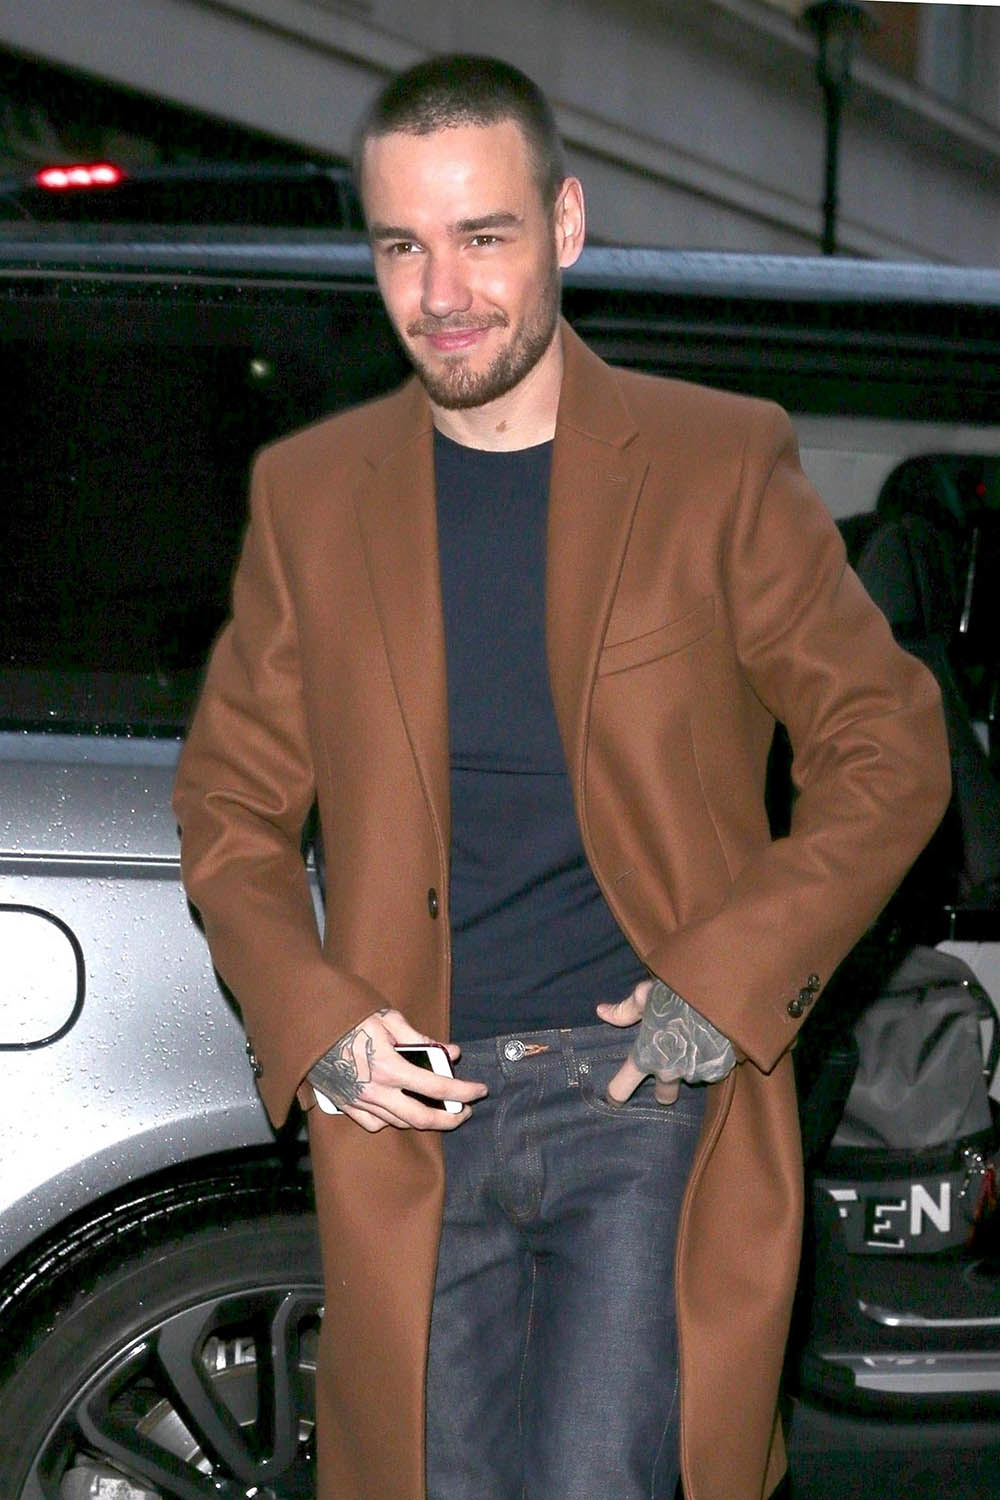 Liam Payne at BBC Radio appearance in London